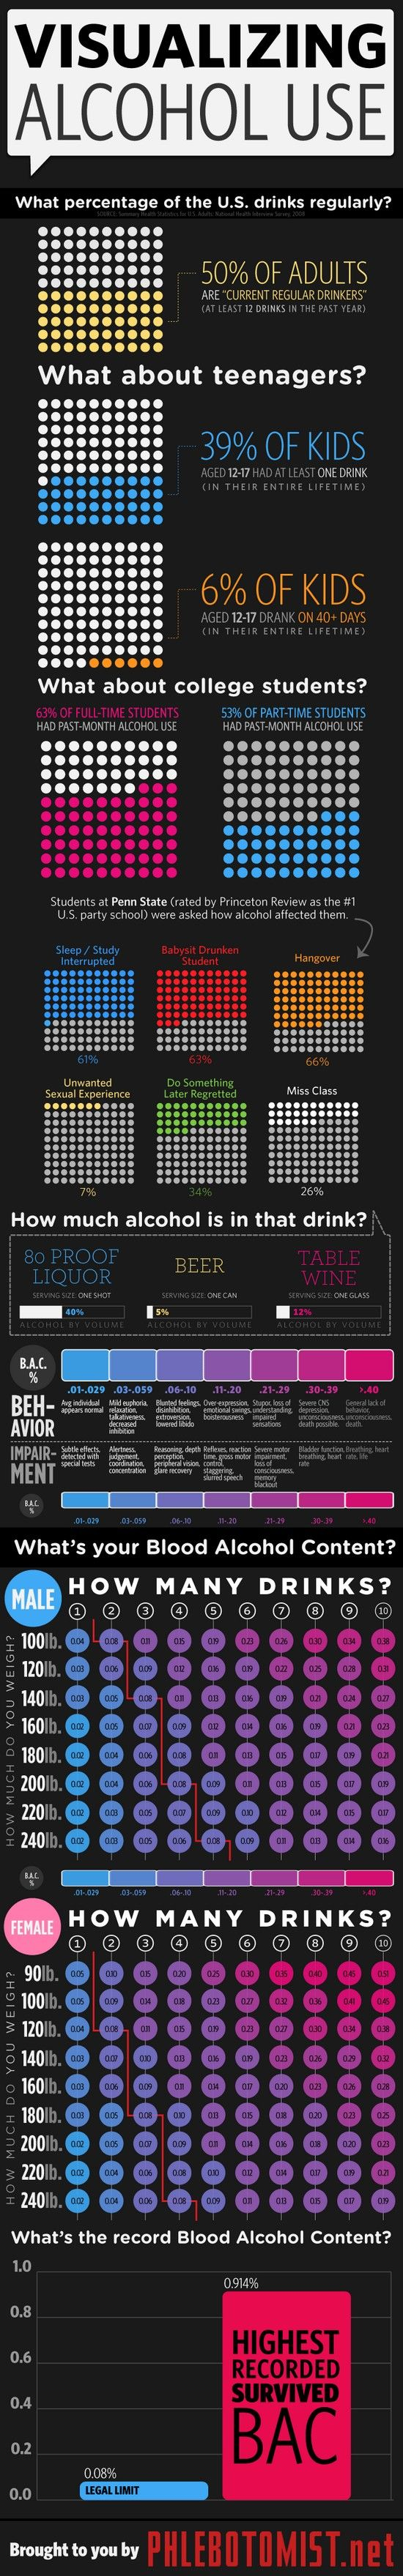 Alcohol facts poster. Although American, there are some interesting facts in here. #Alcohol #AlcoholFacts